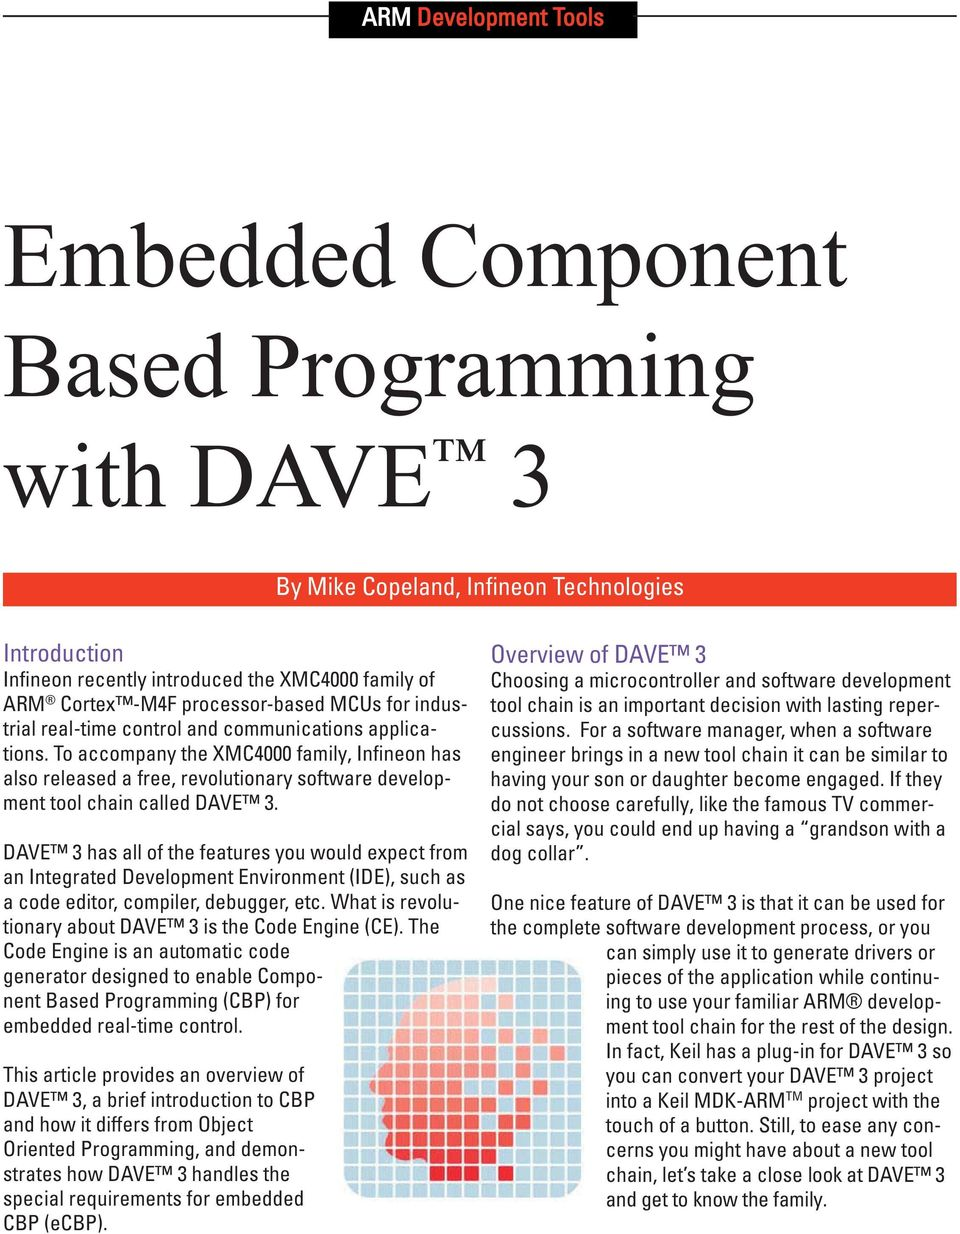 DAVE 3 has all of the features you would expect from an Integrated Development Environment (IDE), such as a code editor, compiler, debugger, etc.